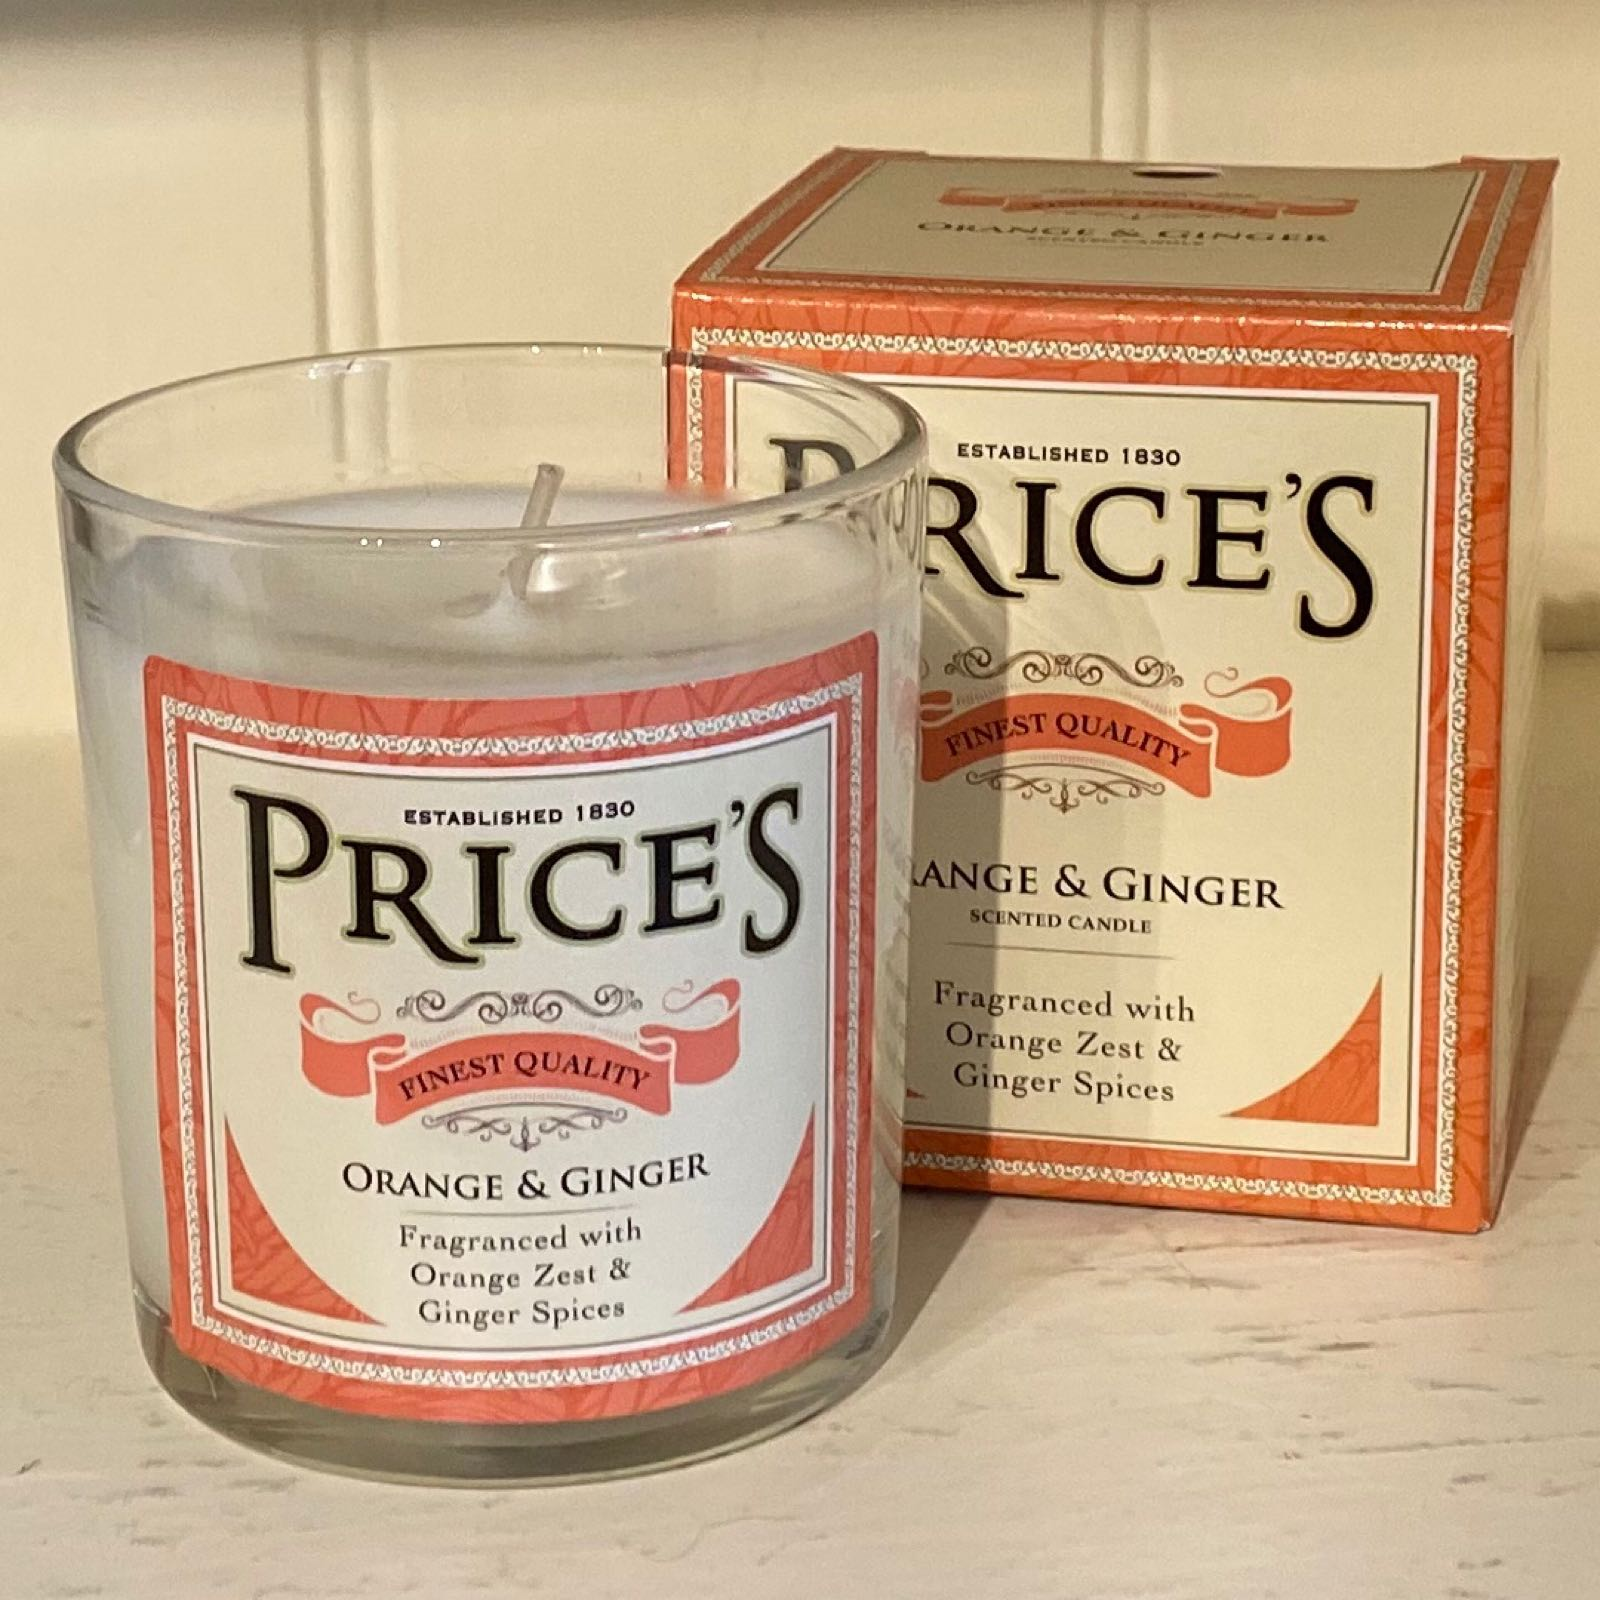 'Orange & Ginger' Heritage Candle (Was £8.50)